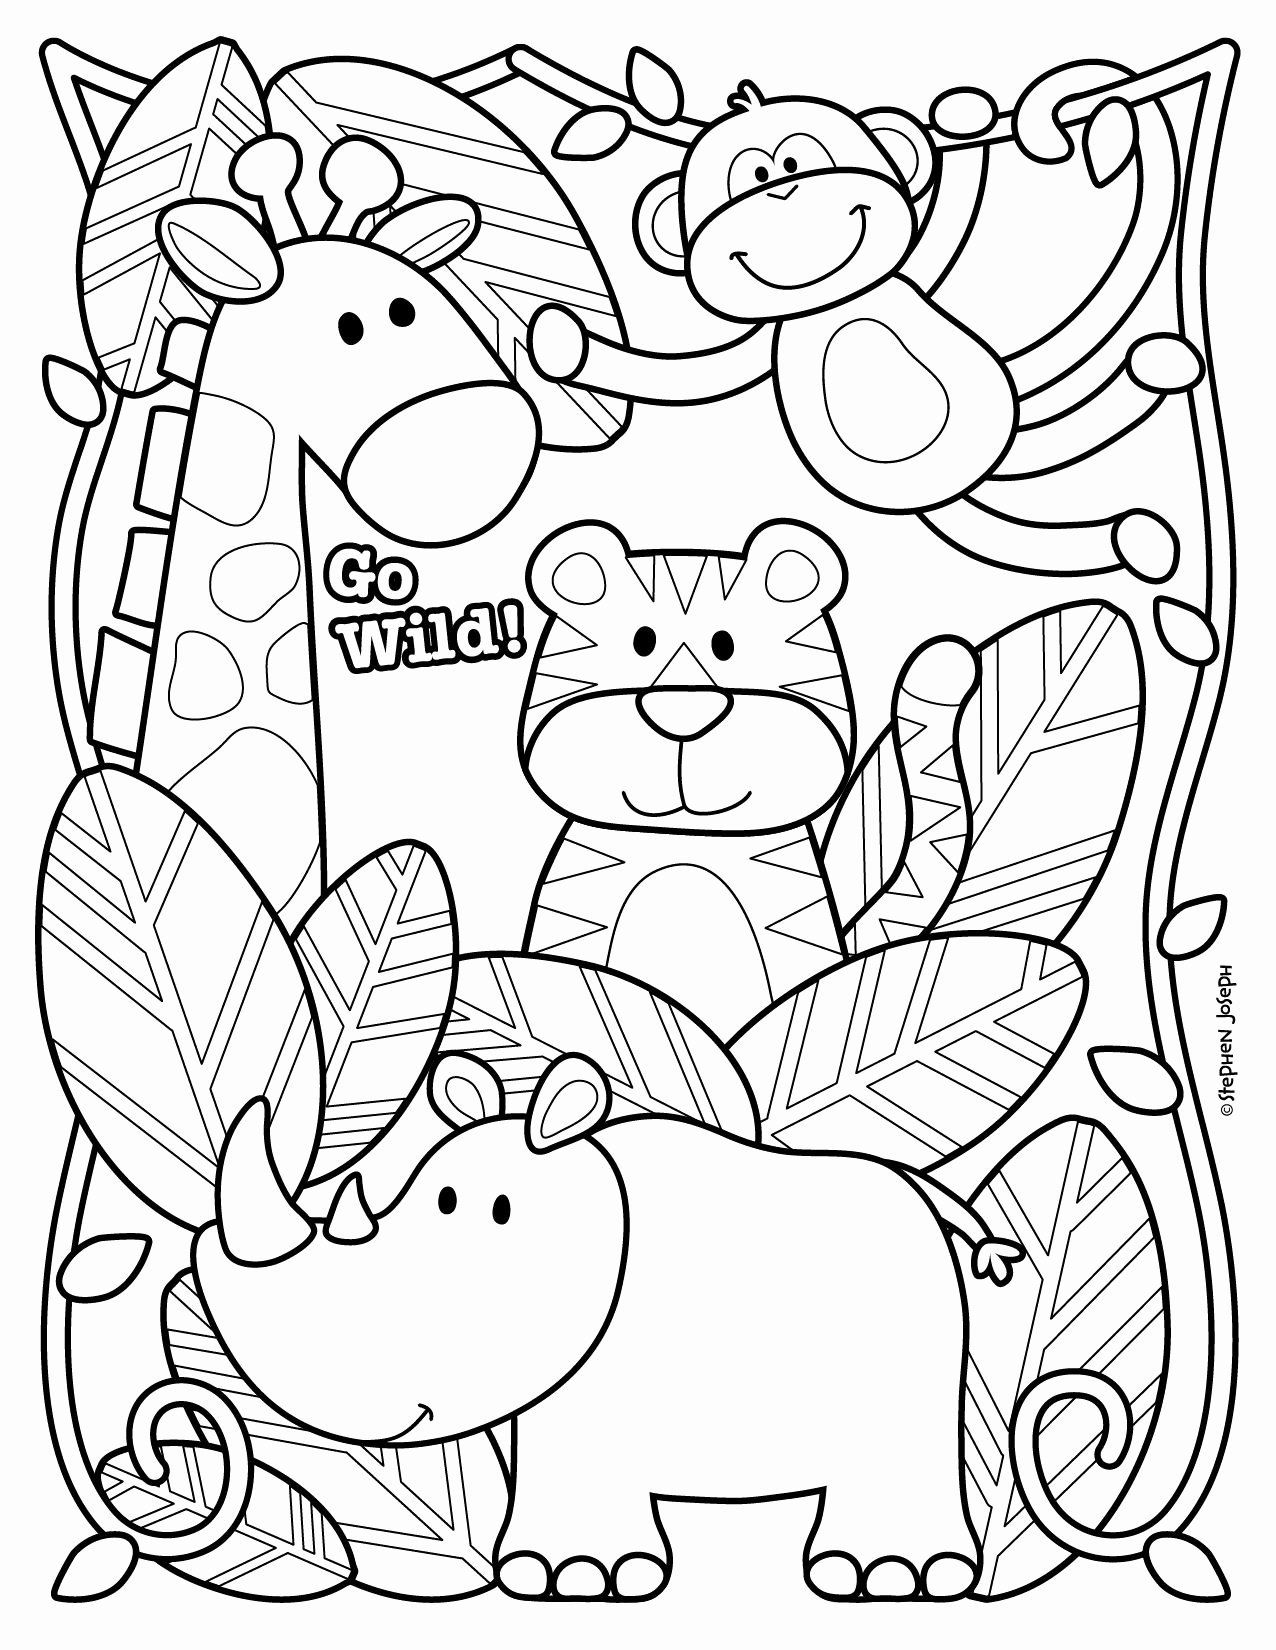 Coloring Sheet Zoo Animals Best Of Collection Zoo Coloring Pages Sabadaphnecottage Zoo Animal Coloring Pages Zoo Coloring Pages Animal Coloring Pages